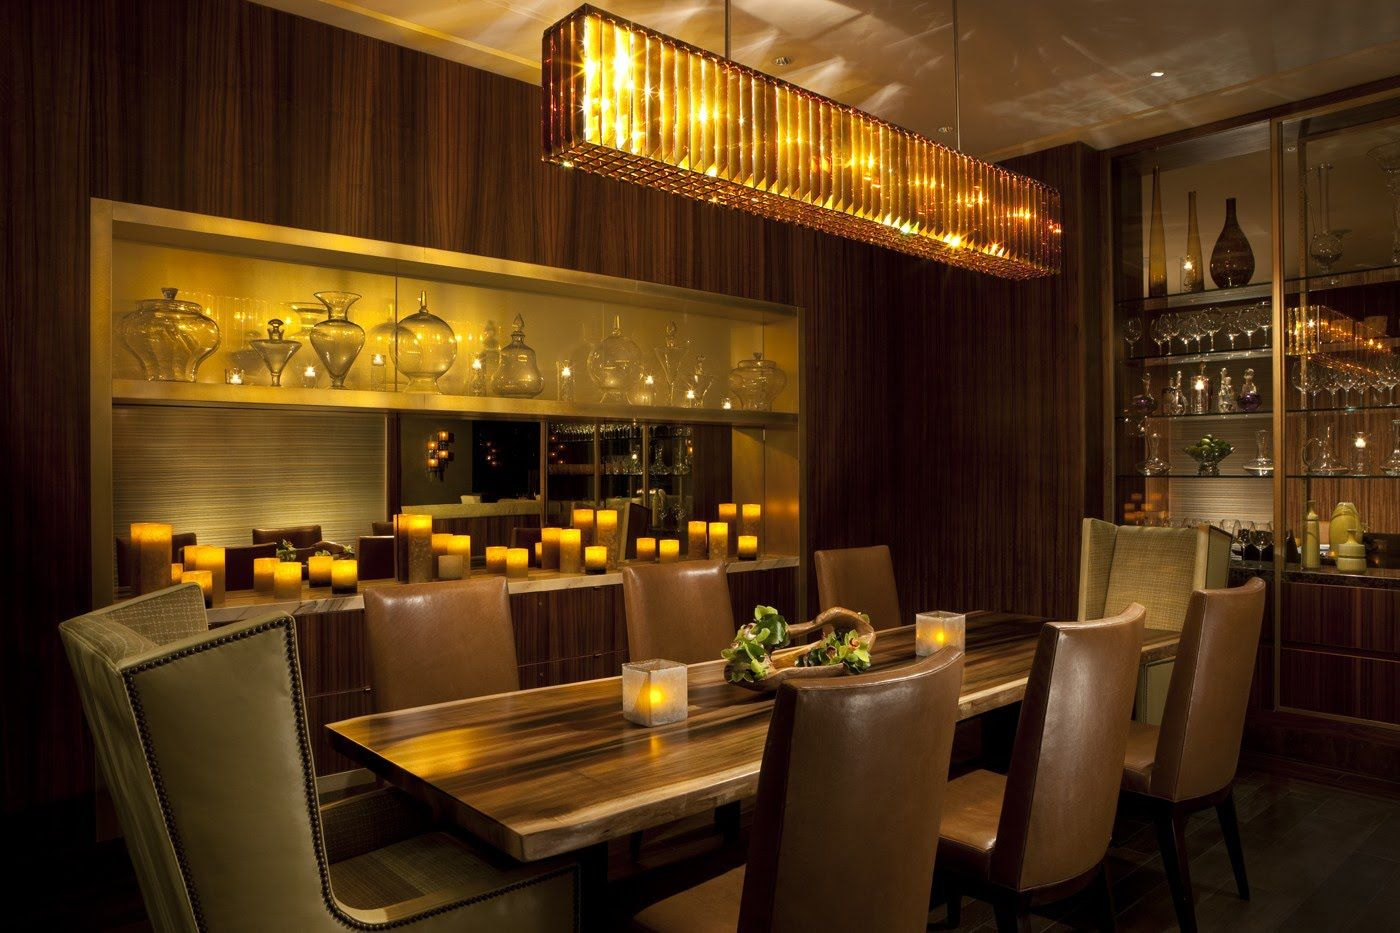 Built in buffet | Eatery Private Room - Inspiration | Pinterest